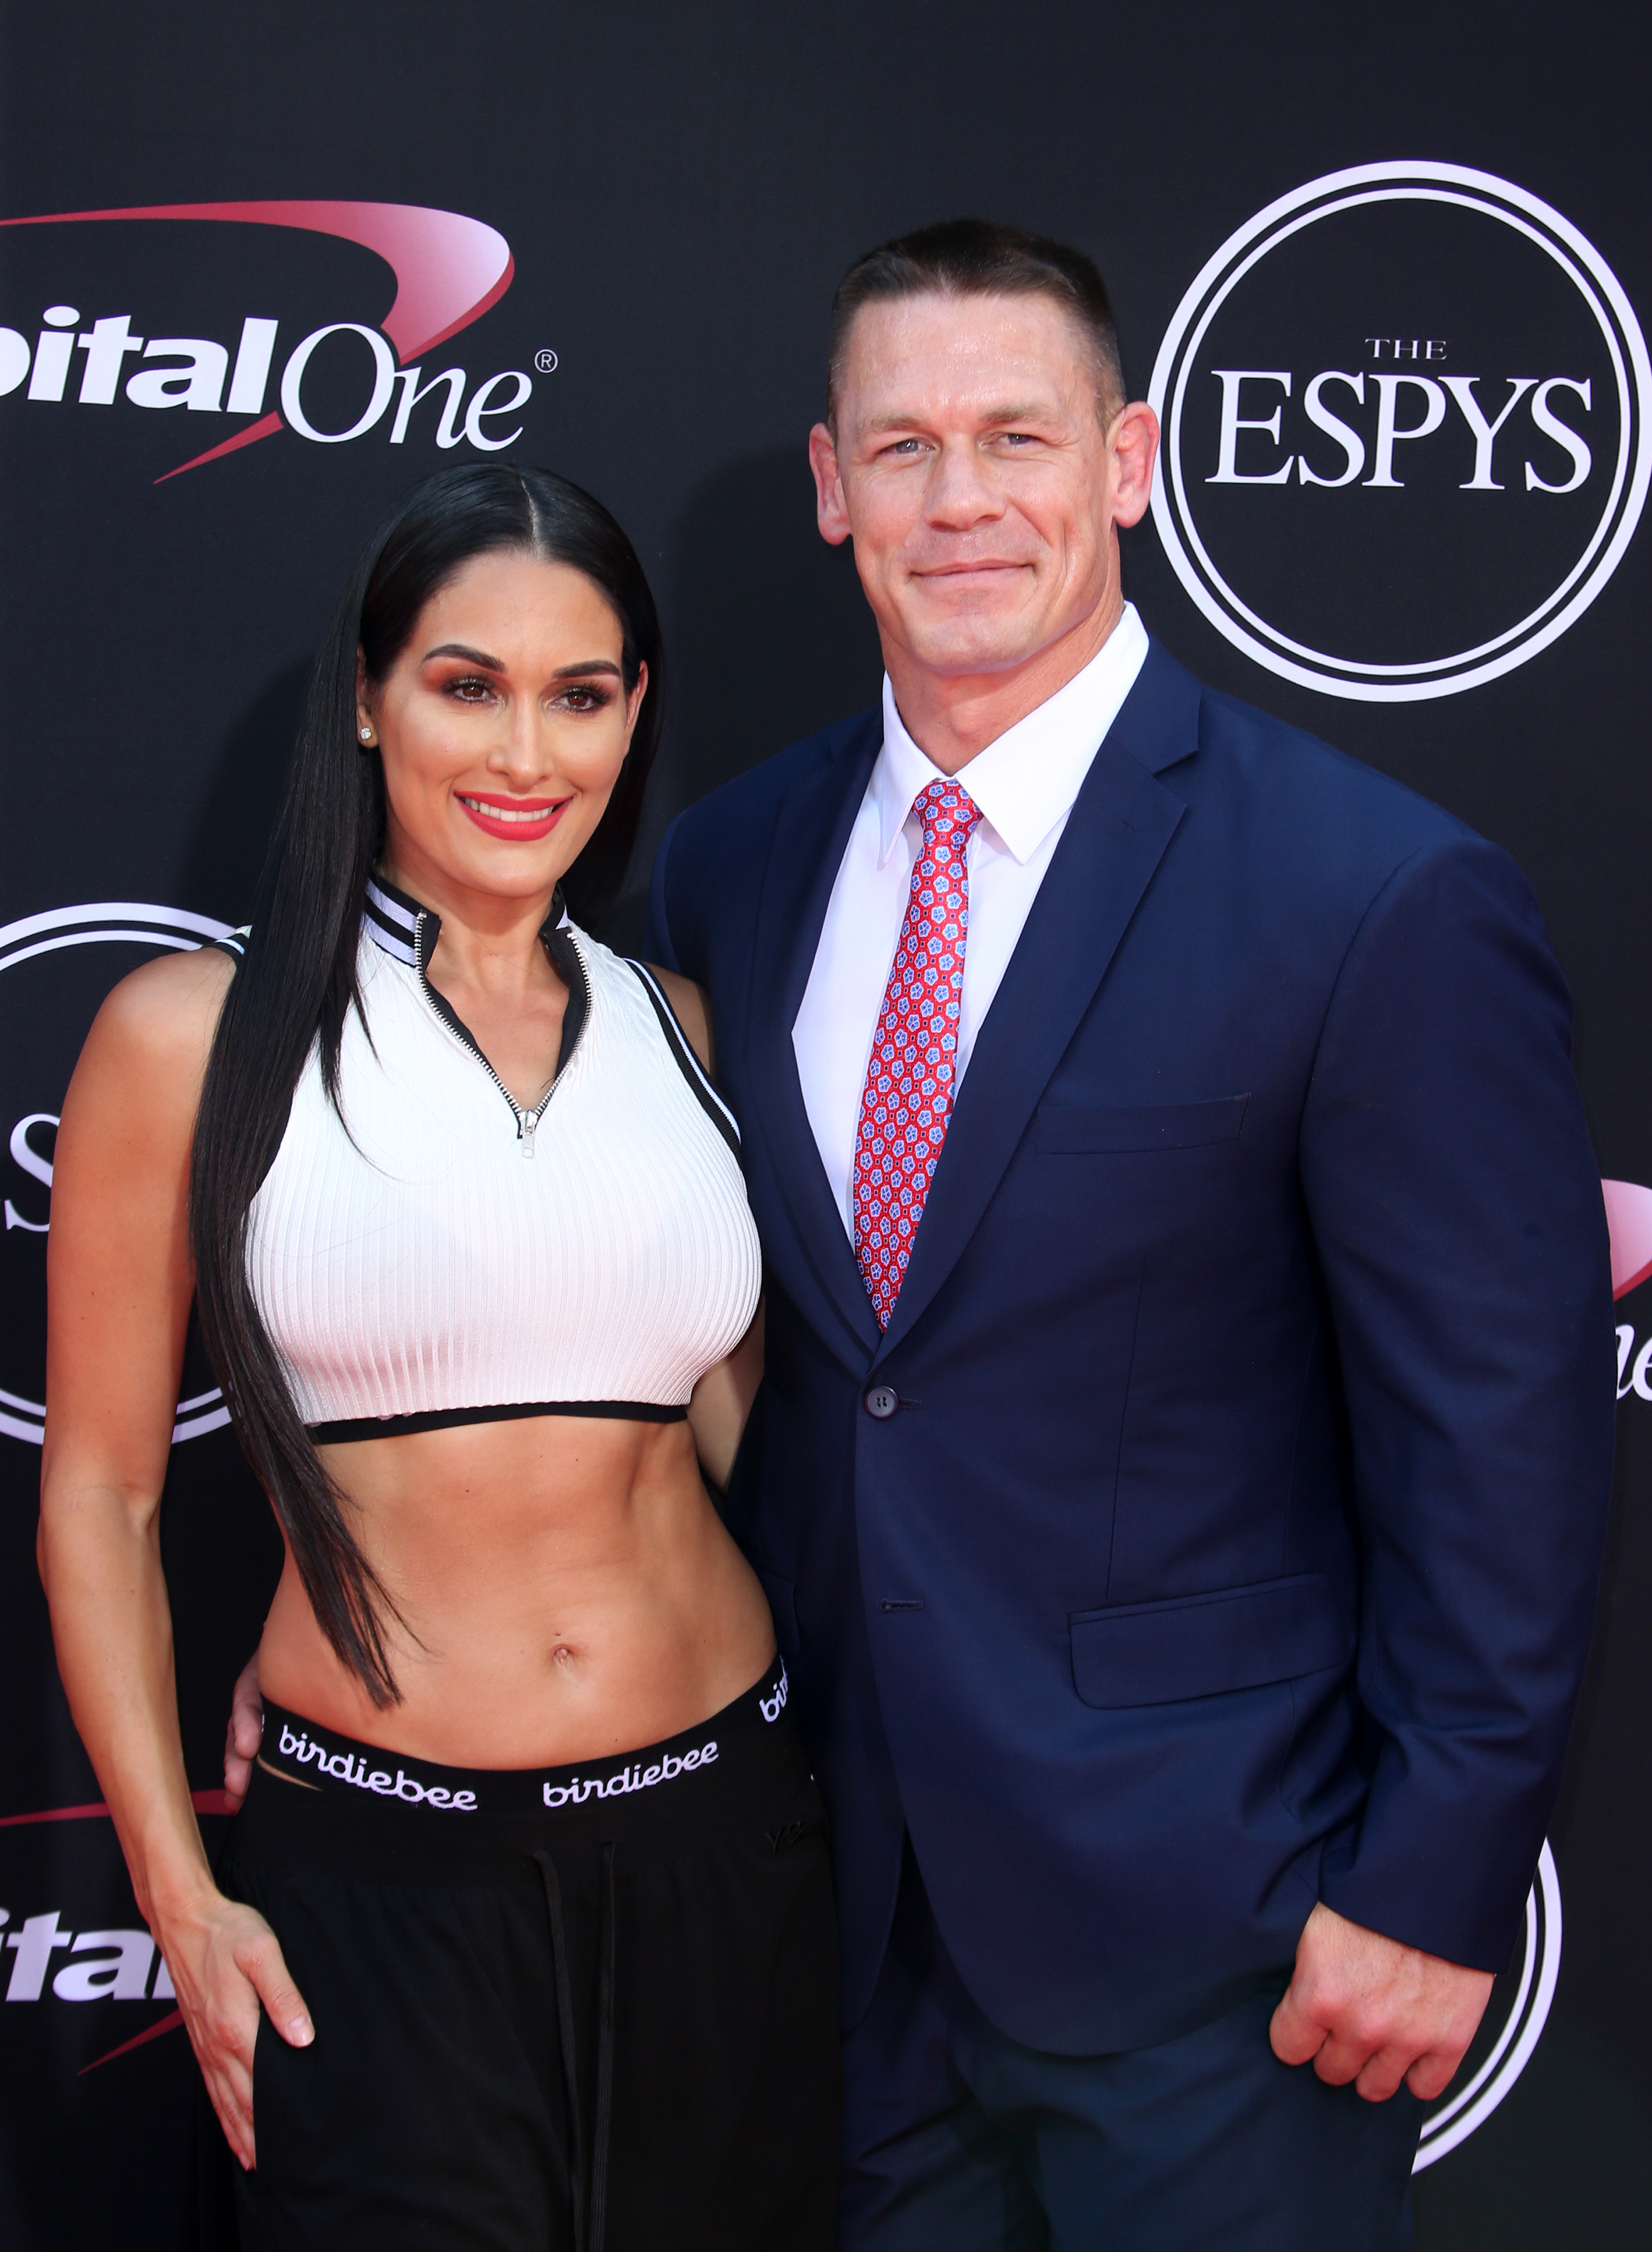 John Cena and Nikki Bella attend the 2017 ESPY Awards in Los Angeles on July 12, 2017.